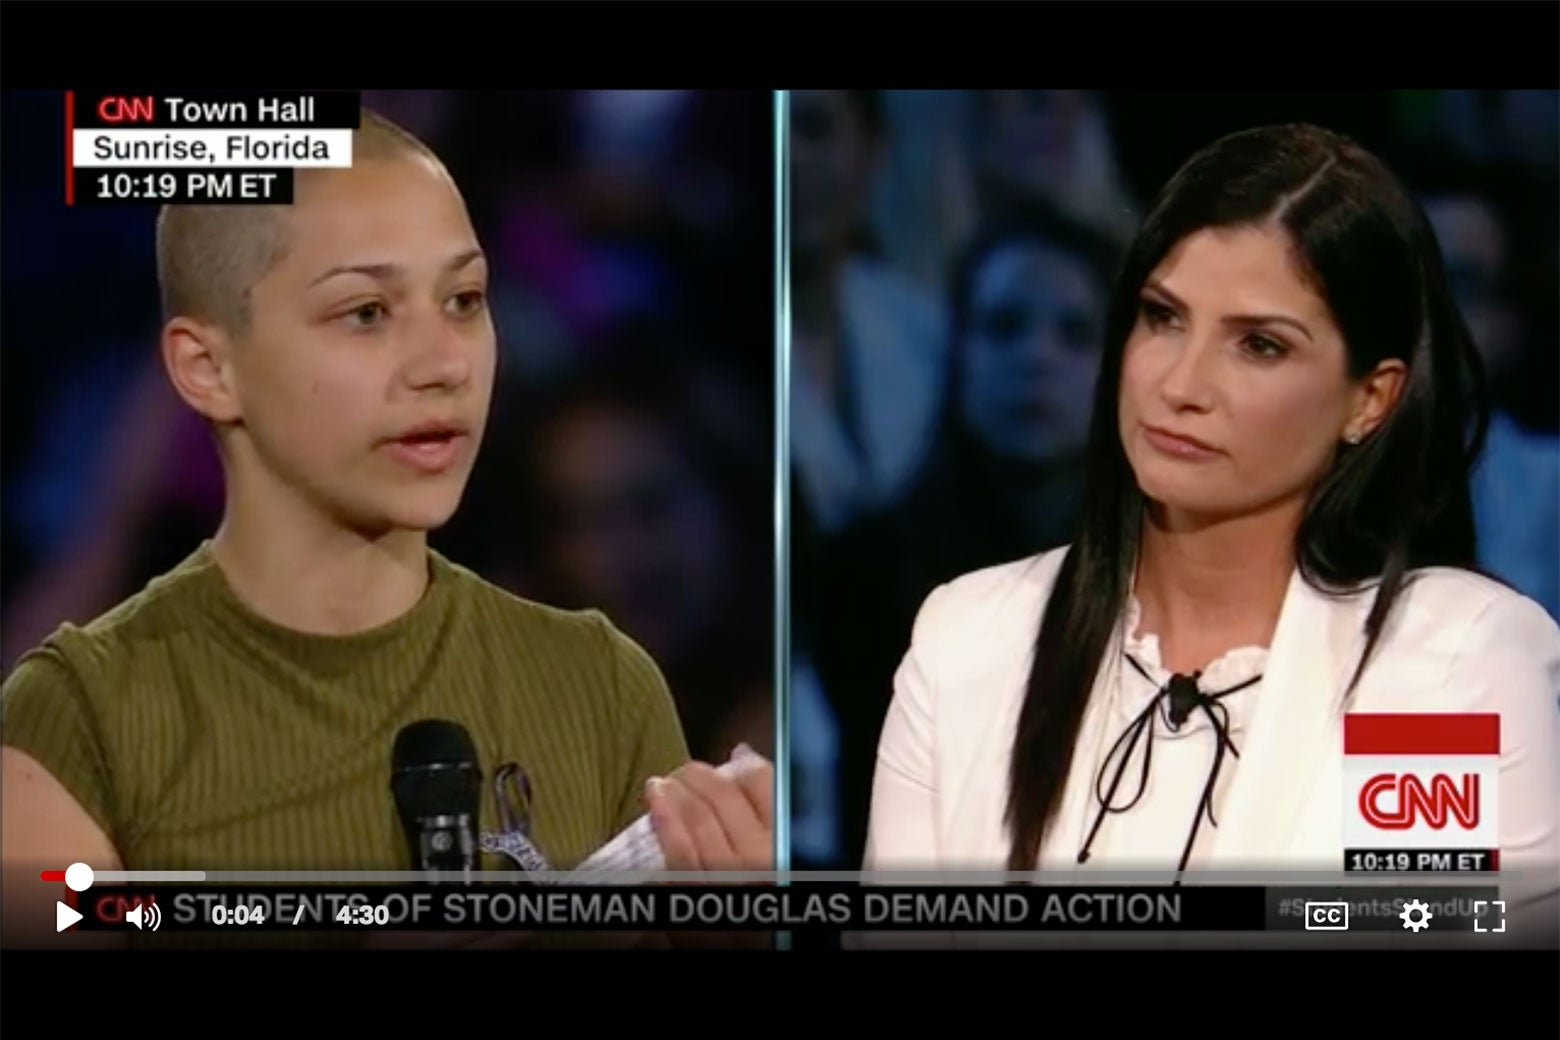 Marjorie Stoneman Douglas student Emma Gonzalez and NRA spokeswoman Dana Loesch at CNN's Wednesday town hall.